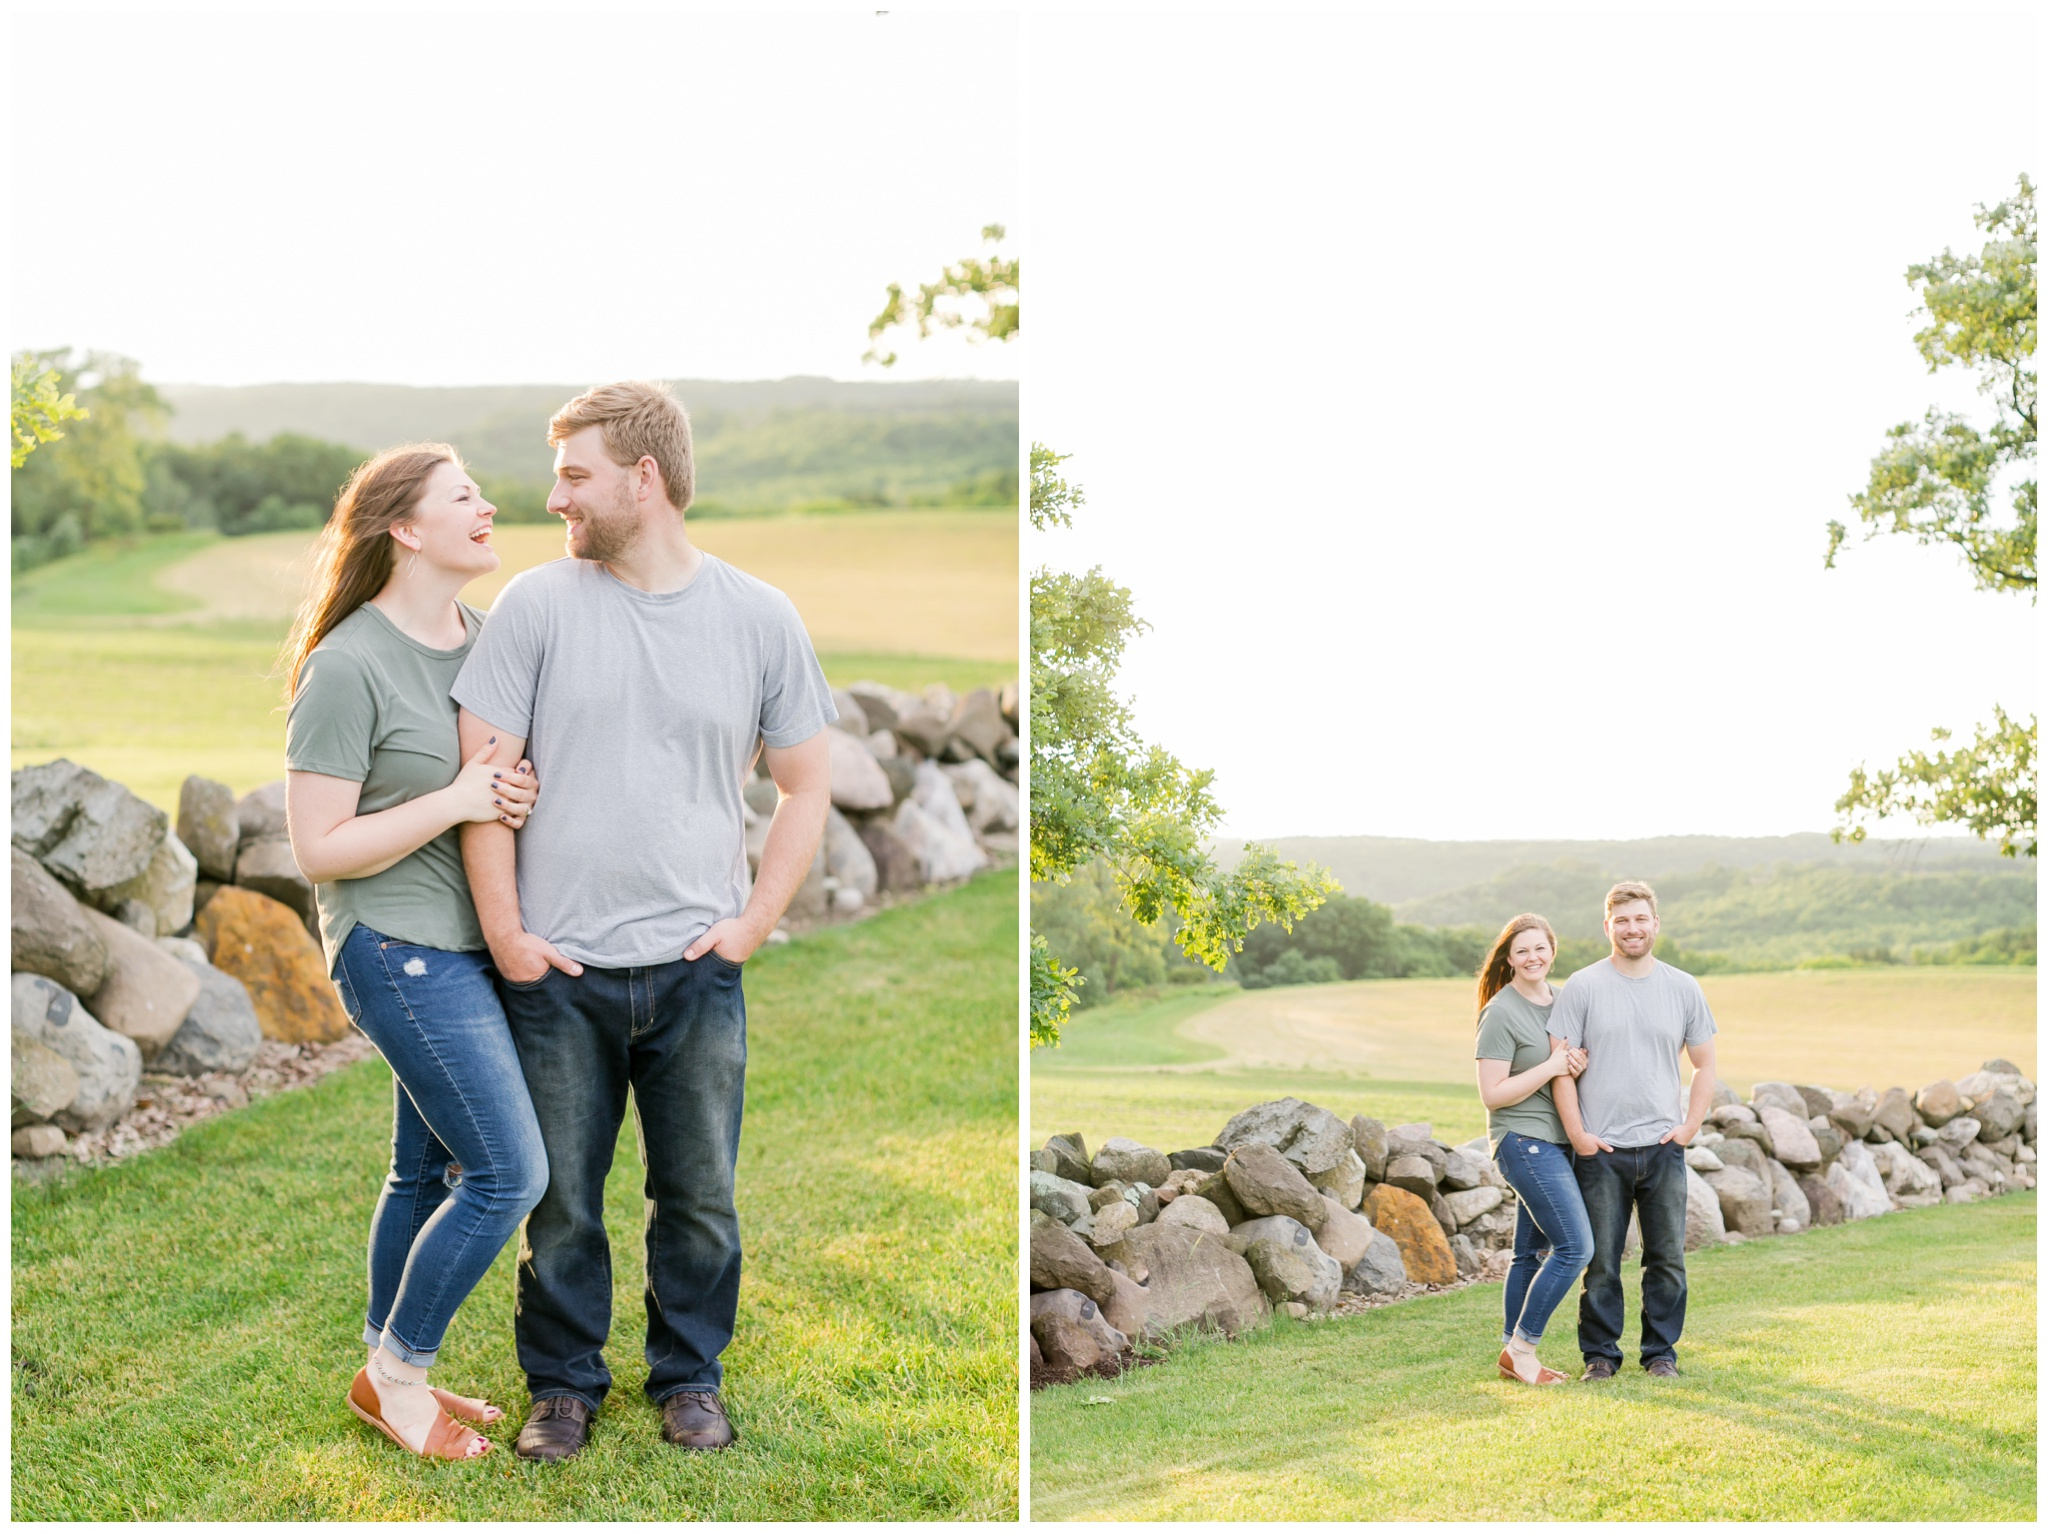 pope_farm_conservancy_engagement_session_madison_wisconsin_engagement_photographers_4154.jpg